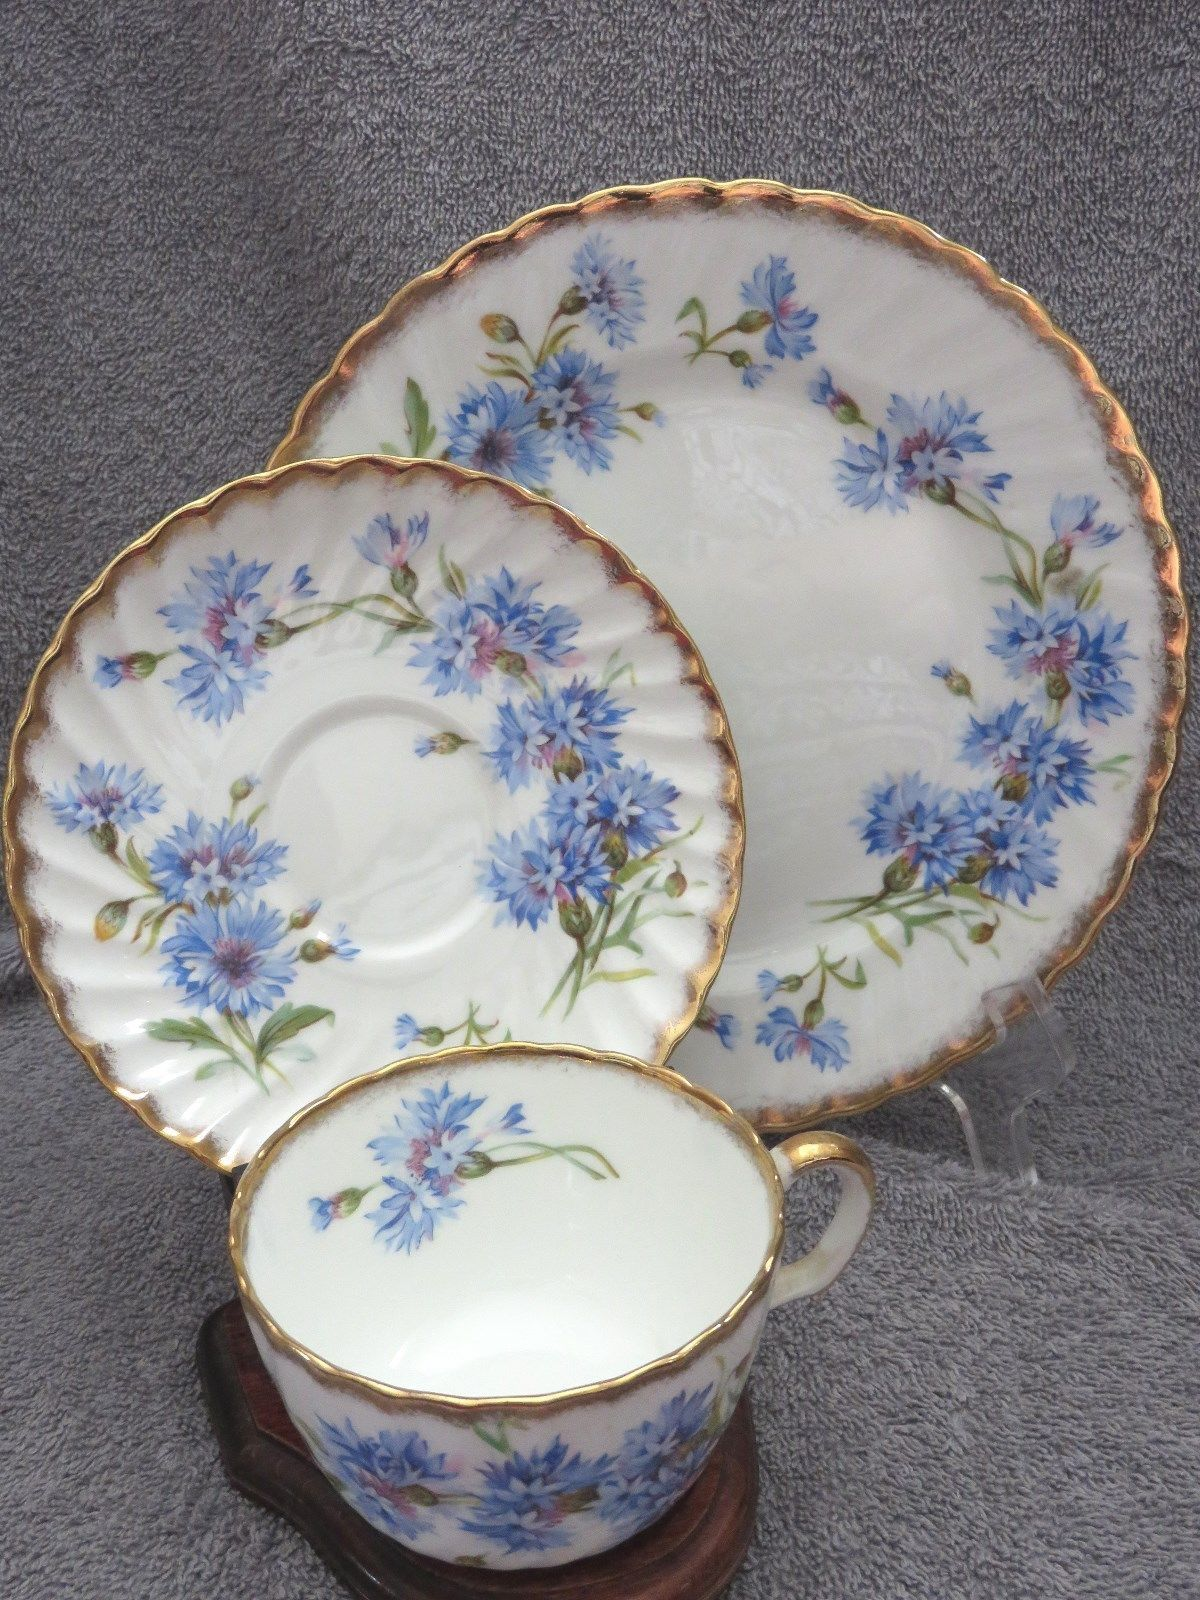 Beautiful Adderley Trio Cup Saucer Plate And 14 Similar Items Bachelor 57